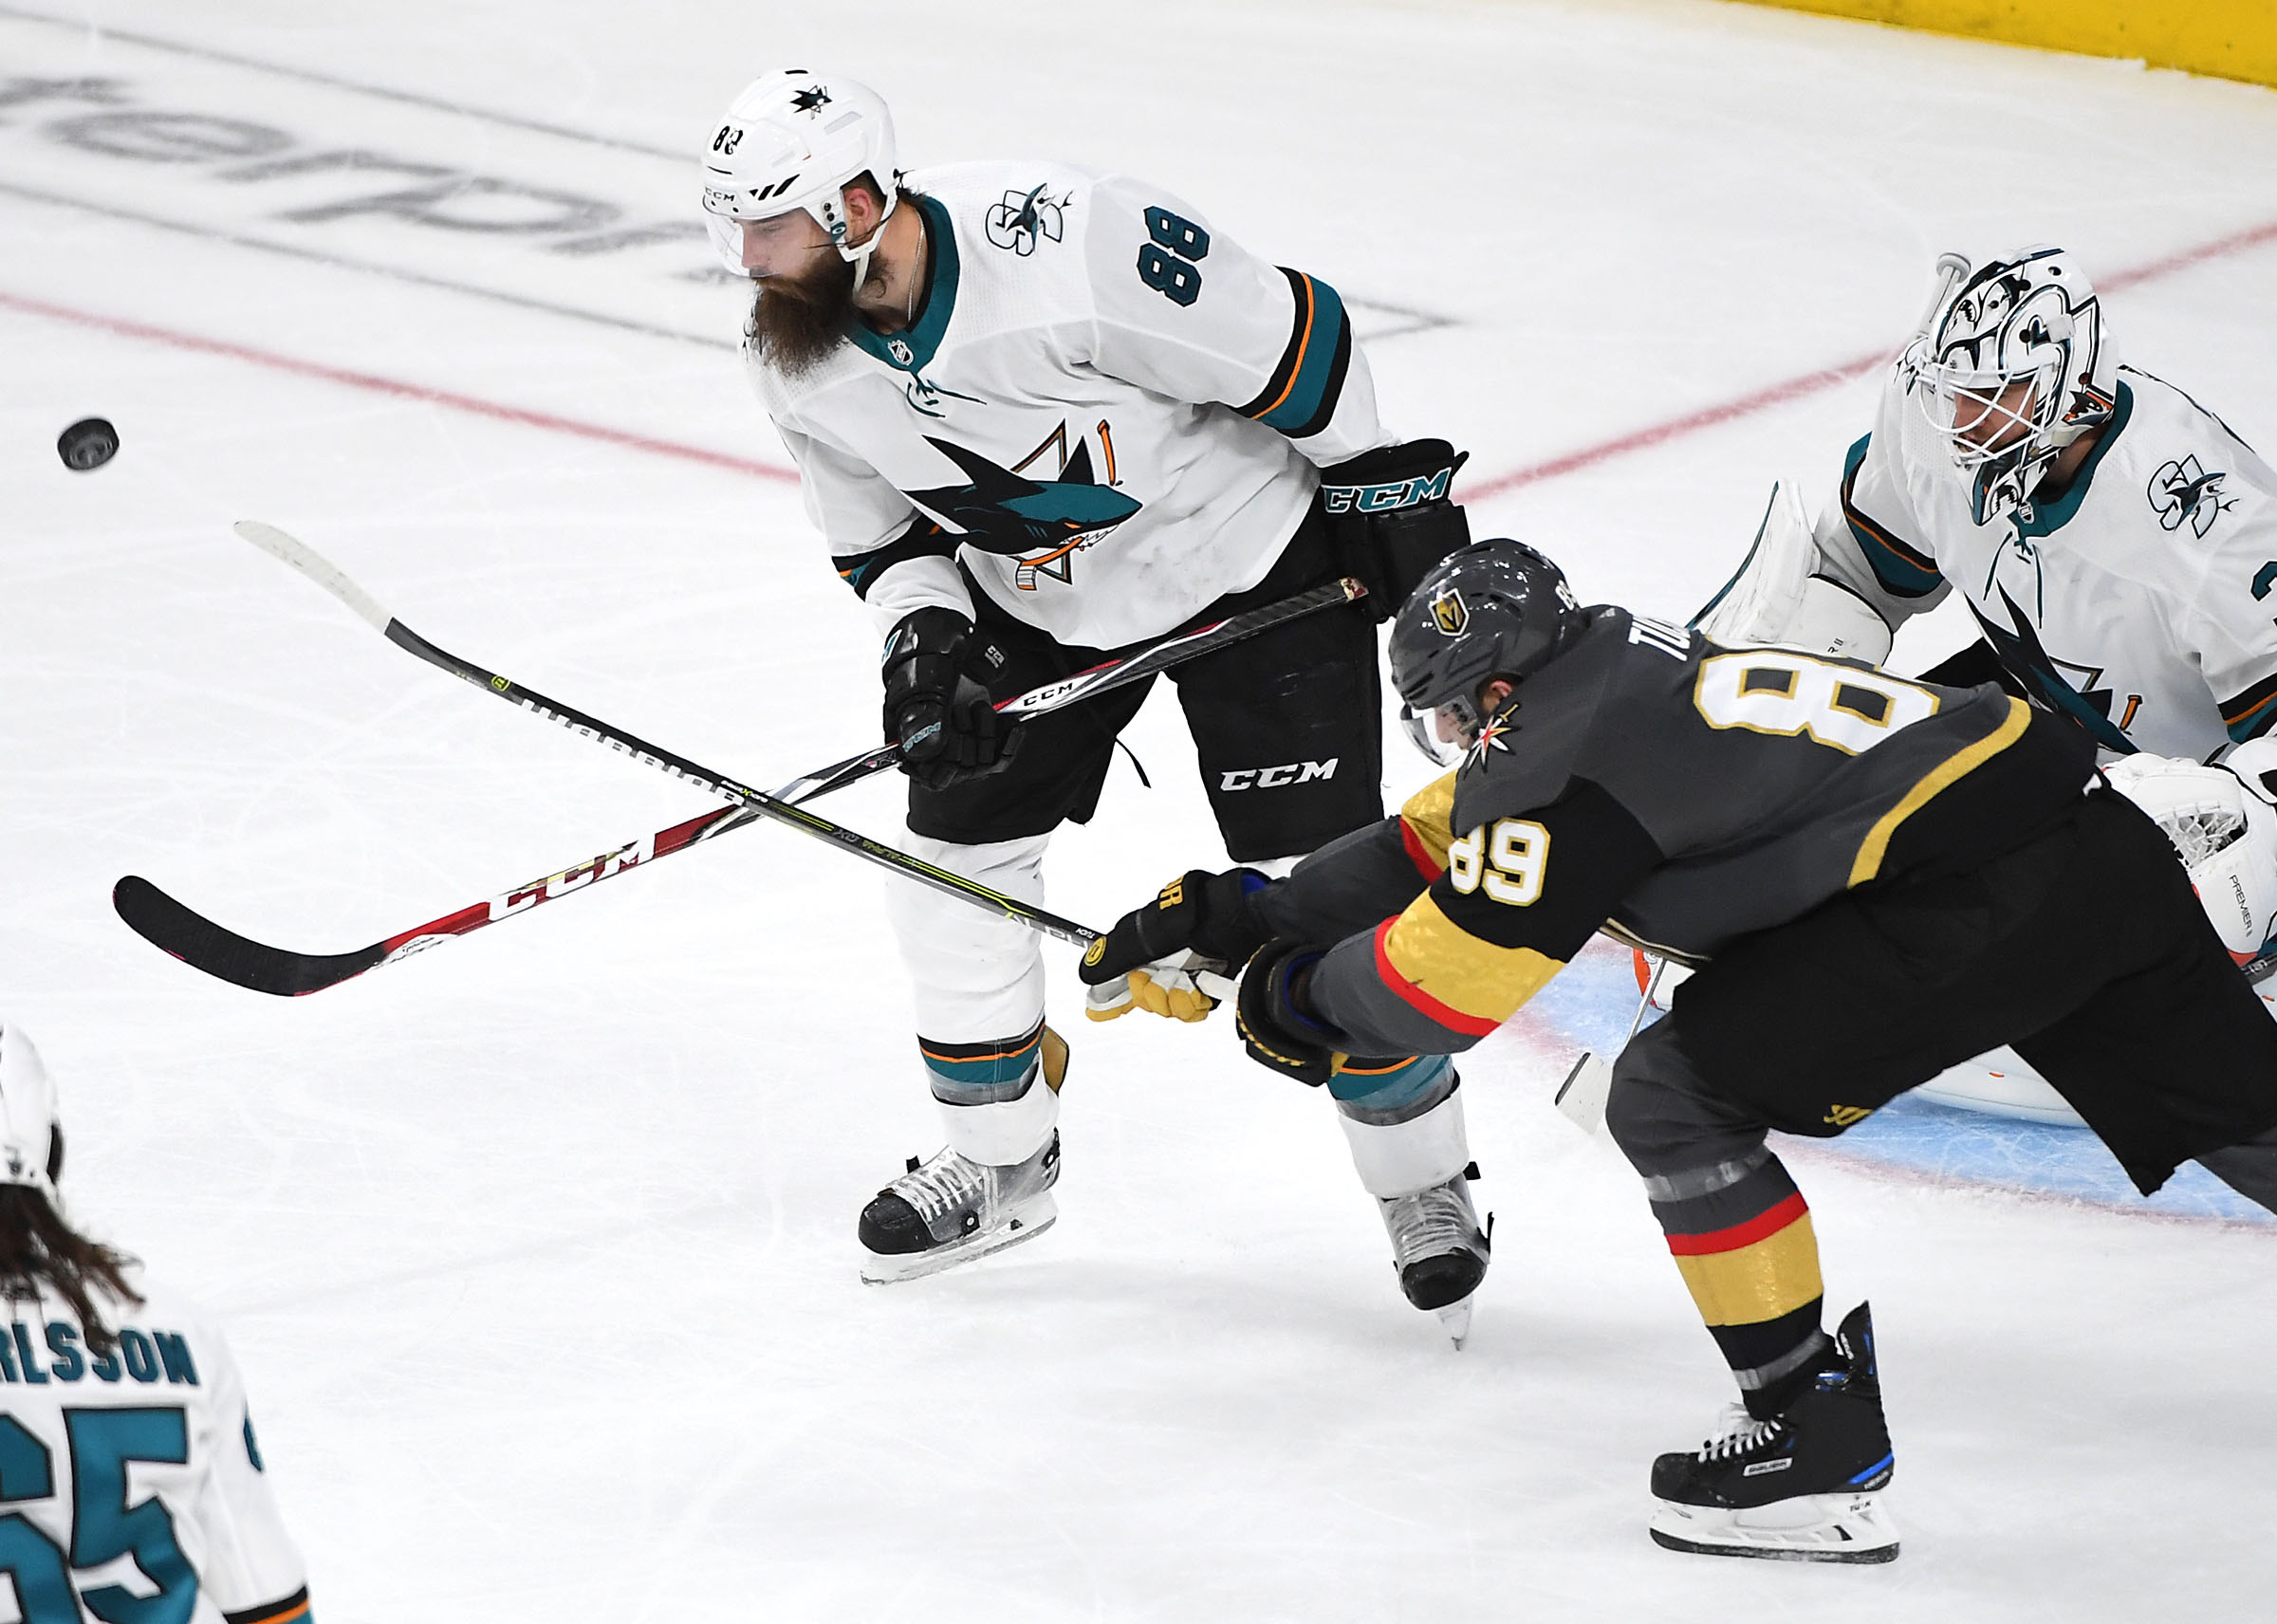 San Jose Sharks defenseman Brent Burns (88) clears the puck away from Vegas Golden Knights right wing Alex Tuch (89) during the first overtime period of game six of the first round of the 2019 Stanley Cup Playoffs at T-Mobile Arena.